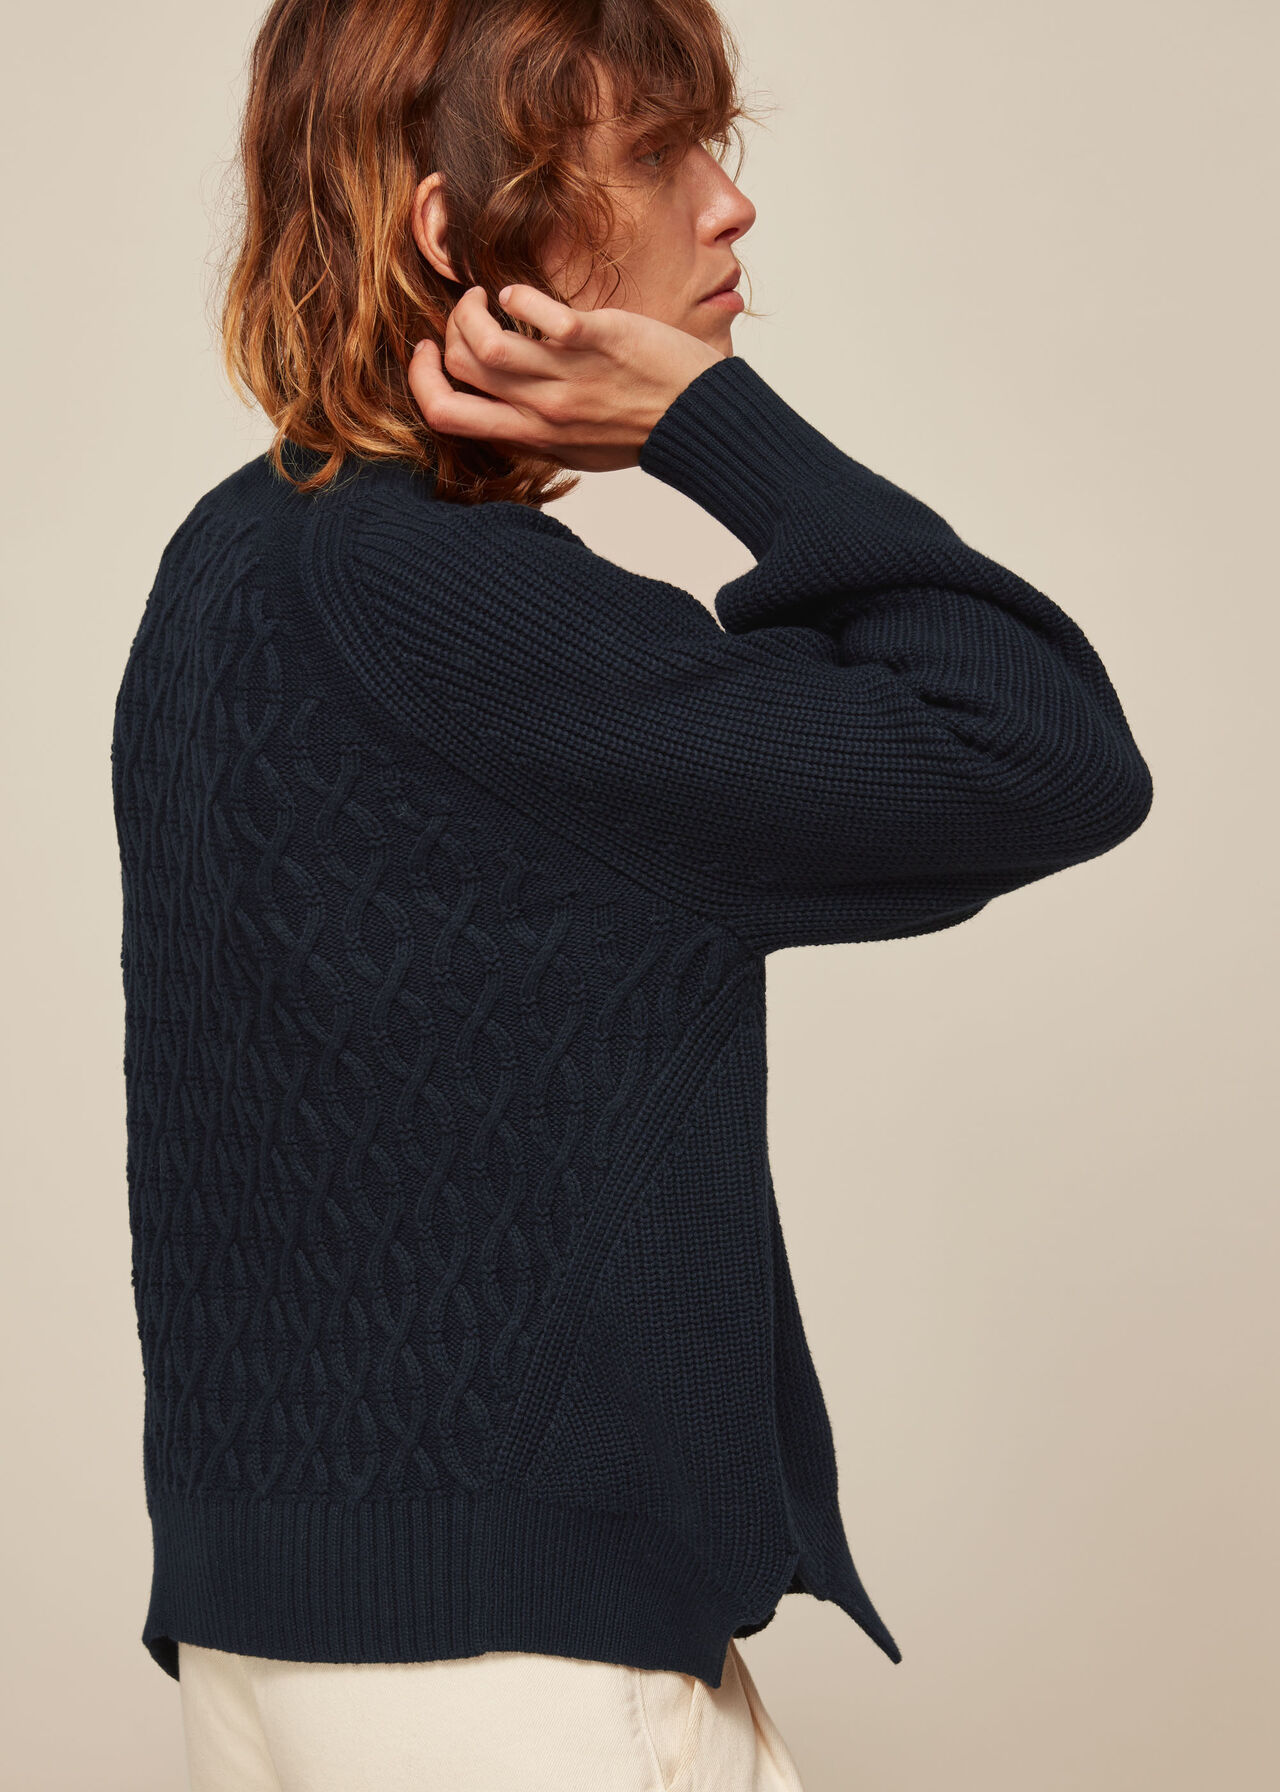 Cable Detail Knit